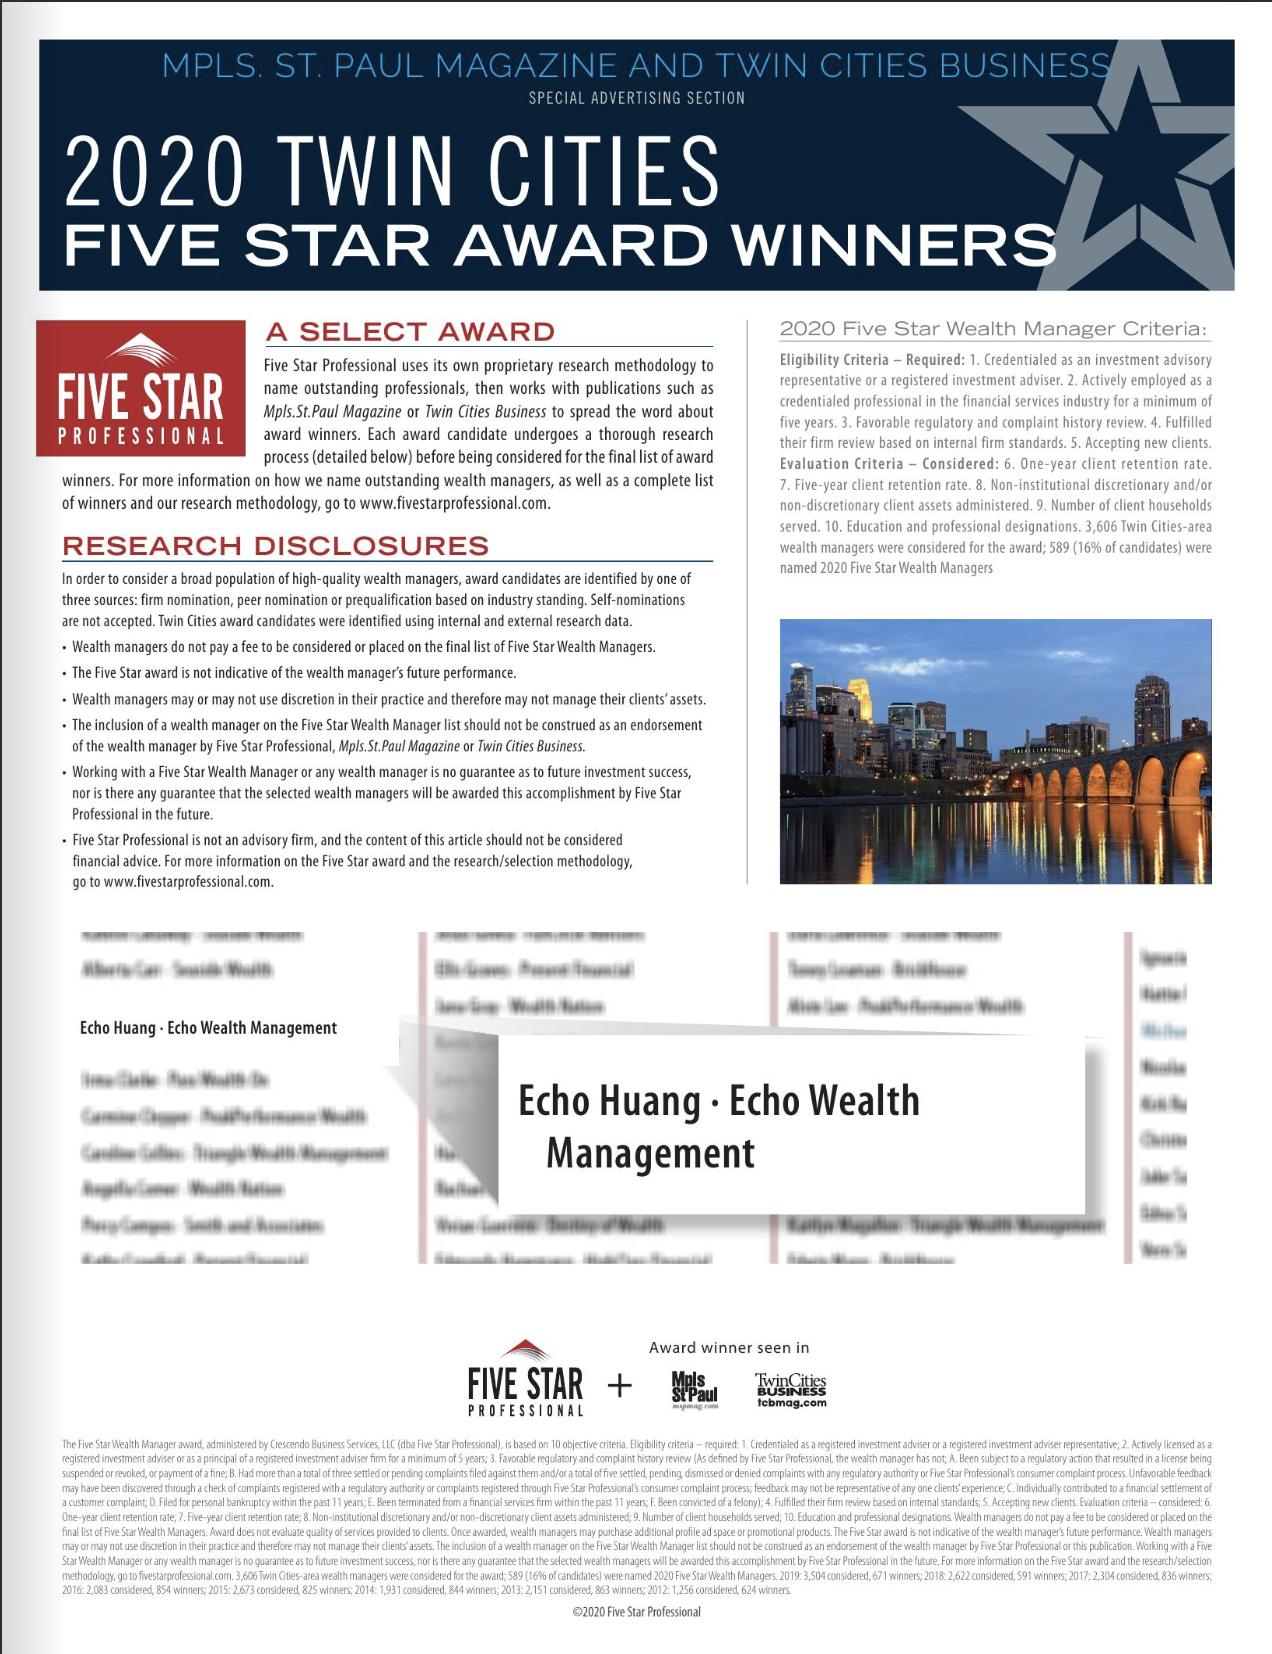 Echo Huang, CFA, CFP®, CPA Awarded the Five Star Wealth Manager Award for 2020!